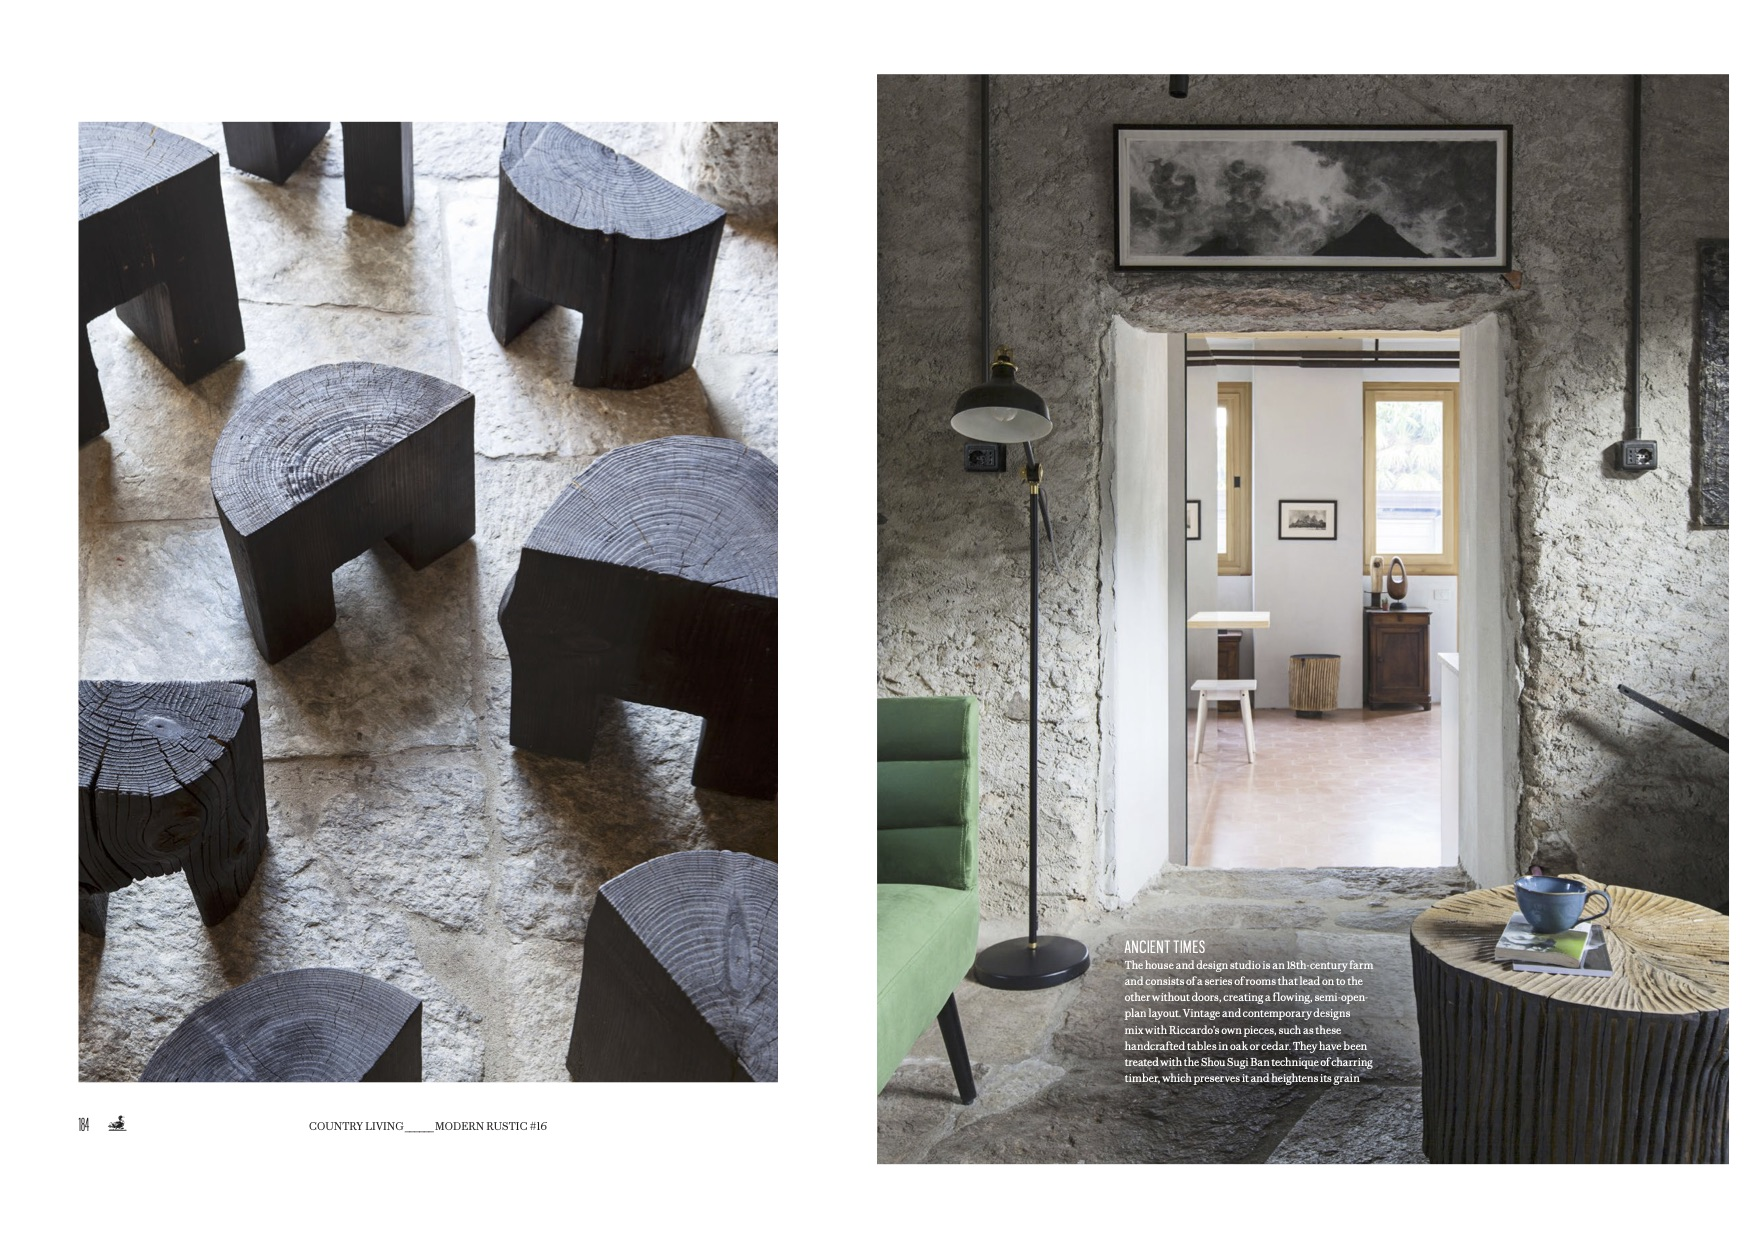 Modern Rustic (UK), interior magazine